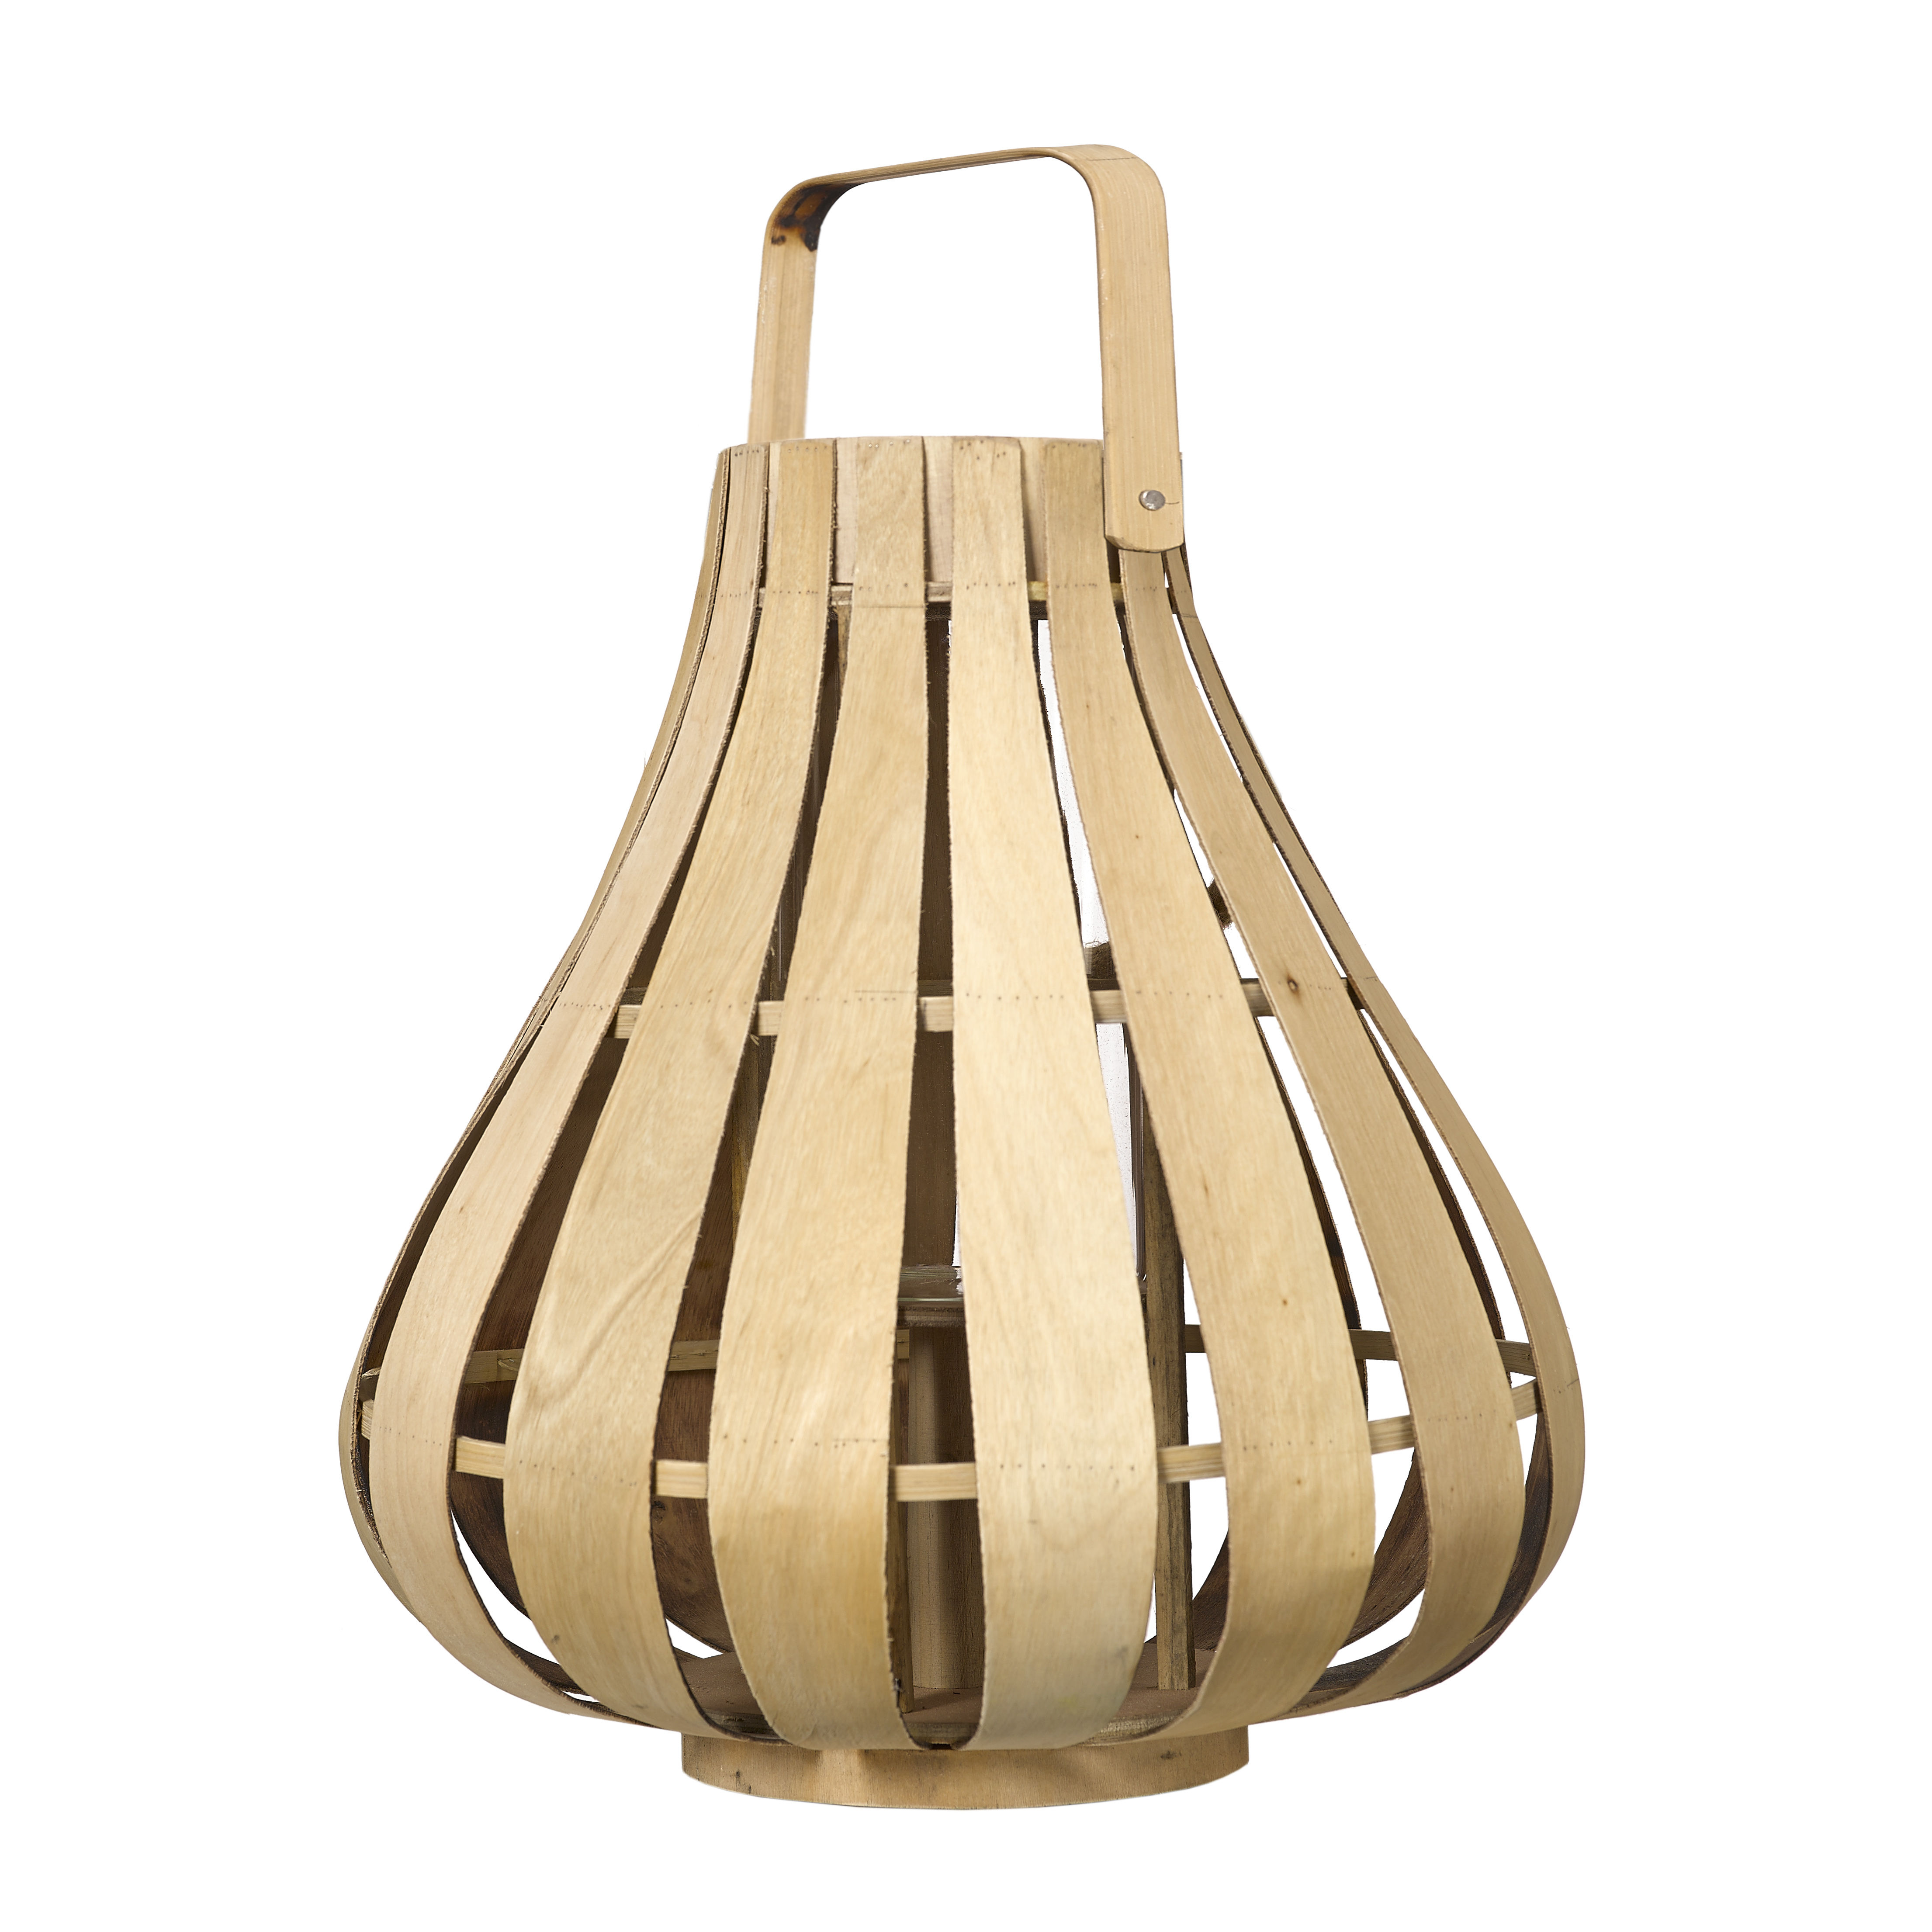 Decoration - Candles & Candle Holders - Vertical Strip Small Lantern - / Bamboo - Ø 39 x H 42 cm by Pols Potten - Natural bamboo - Bamboo, Glass